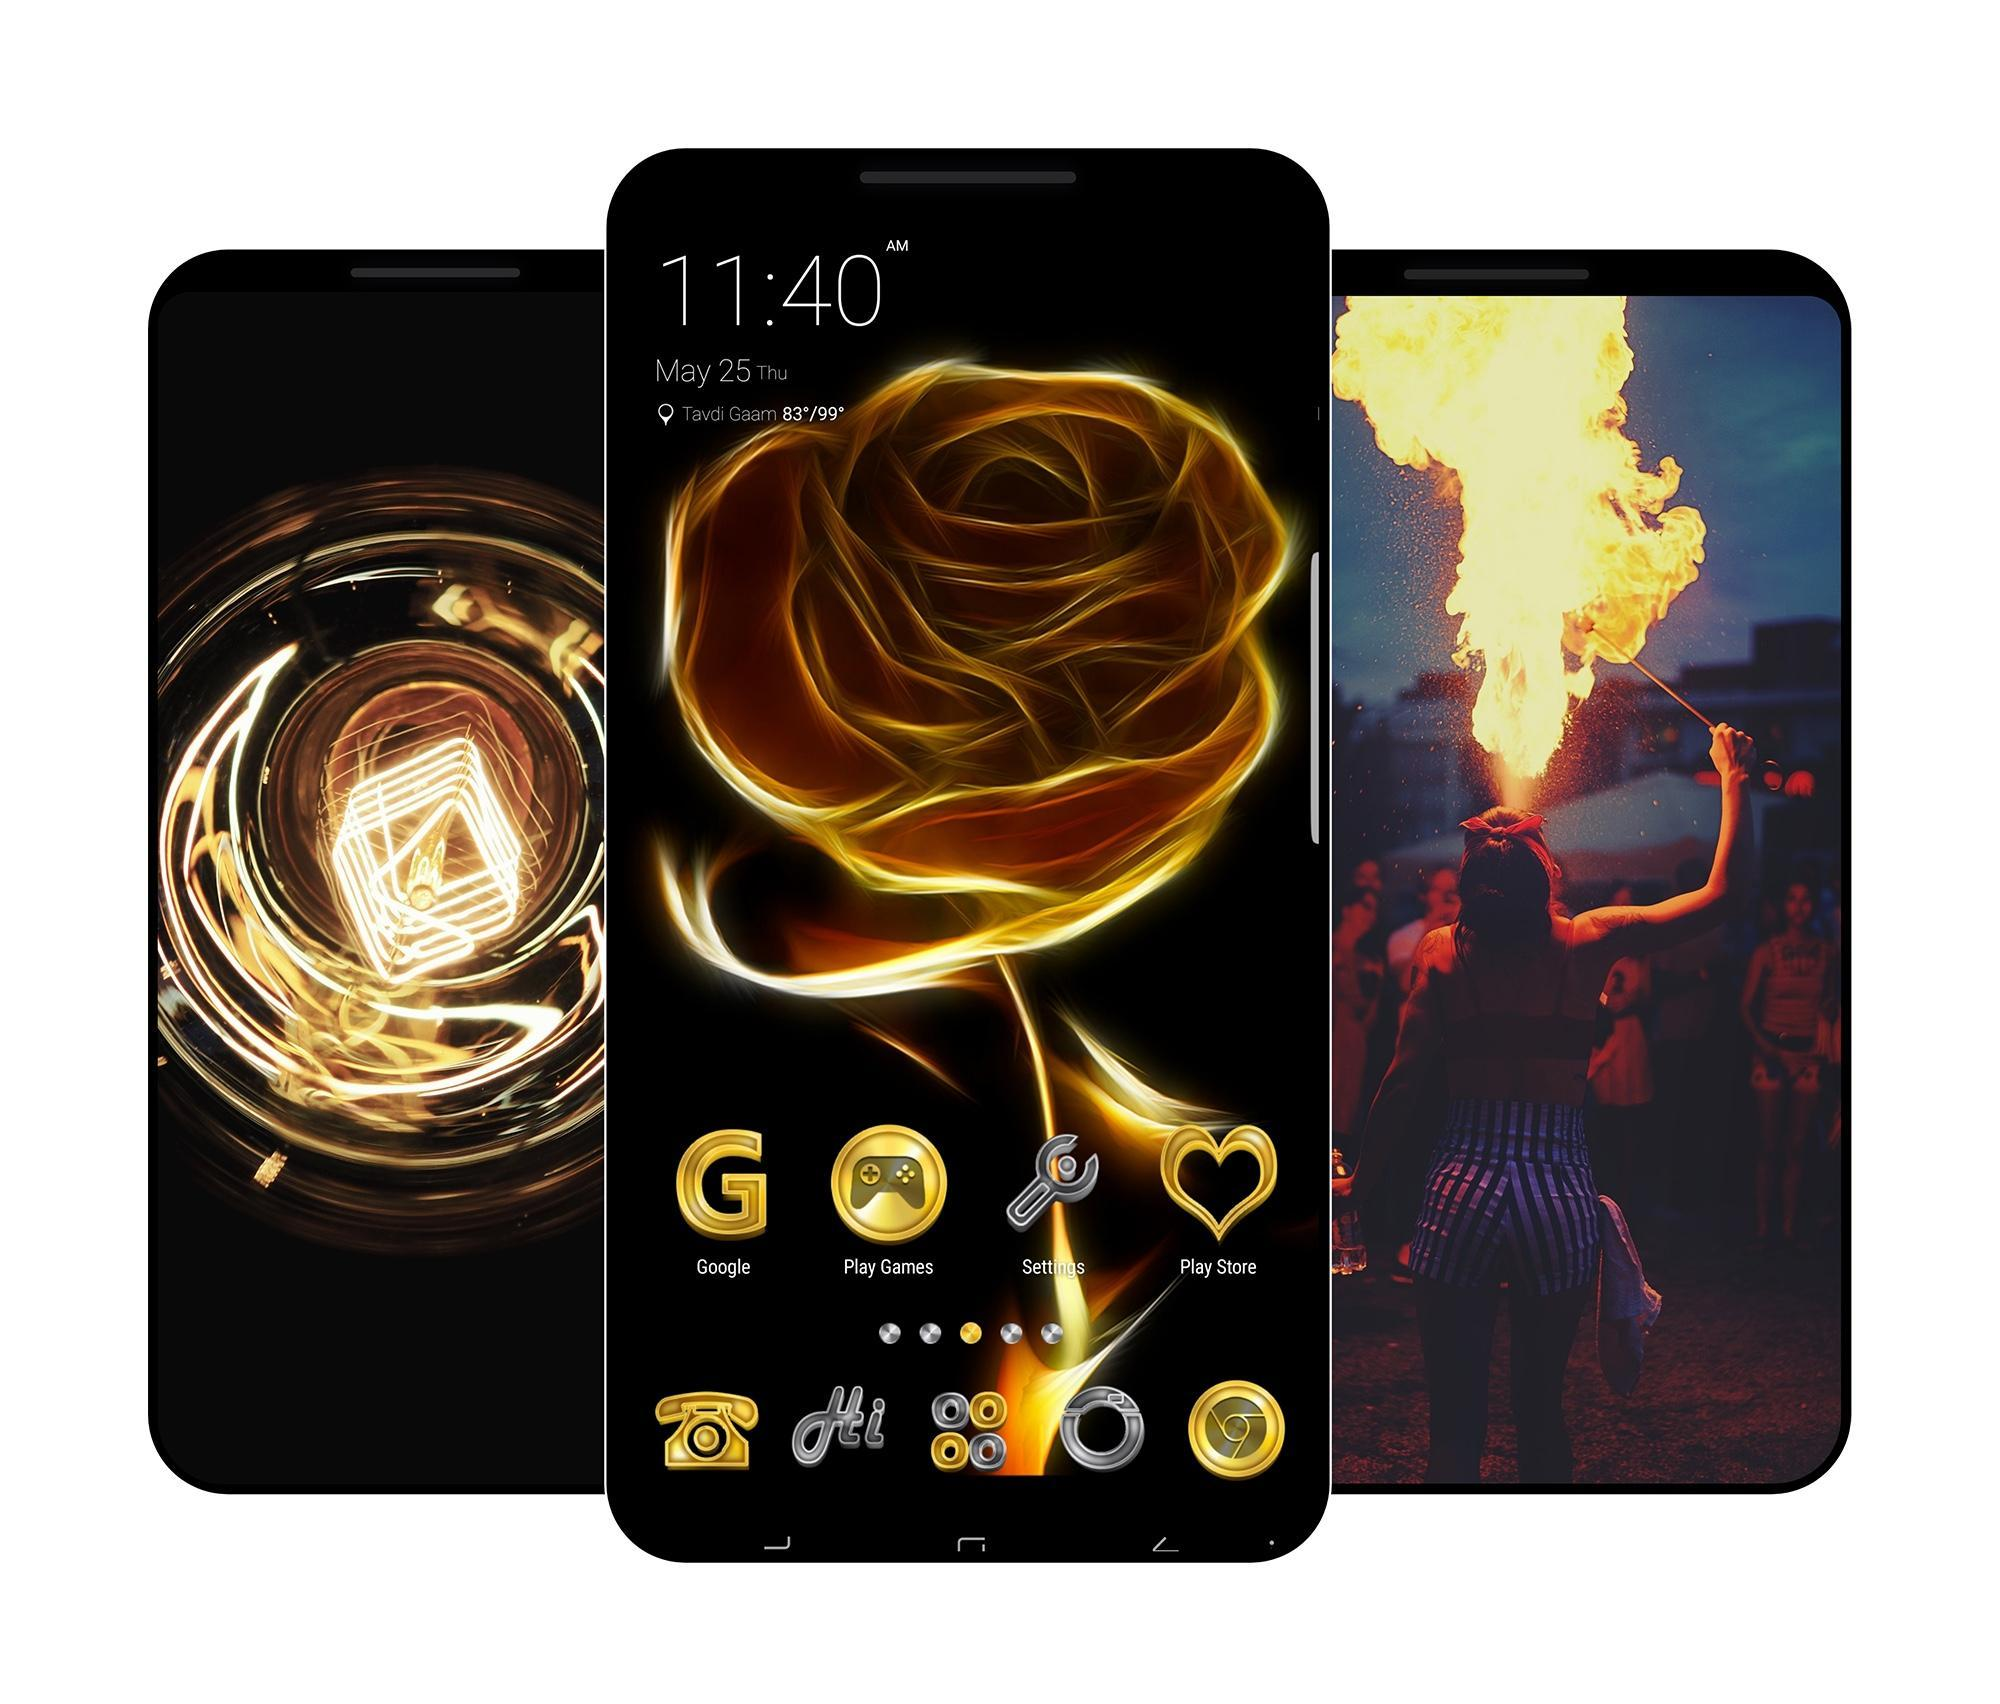 Free Themes for Android ™ for Android - APK Download